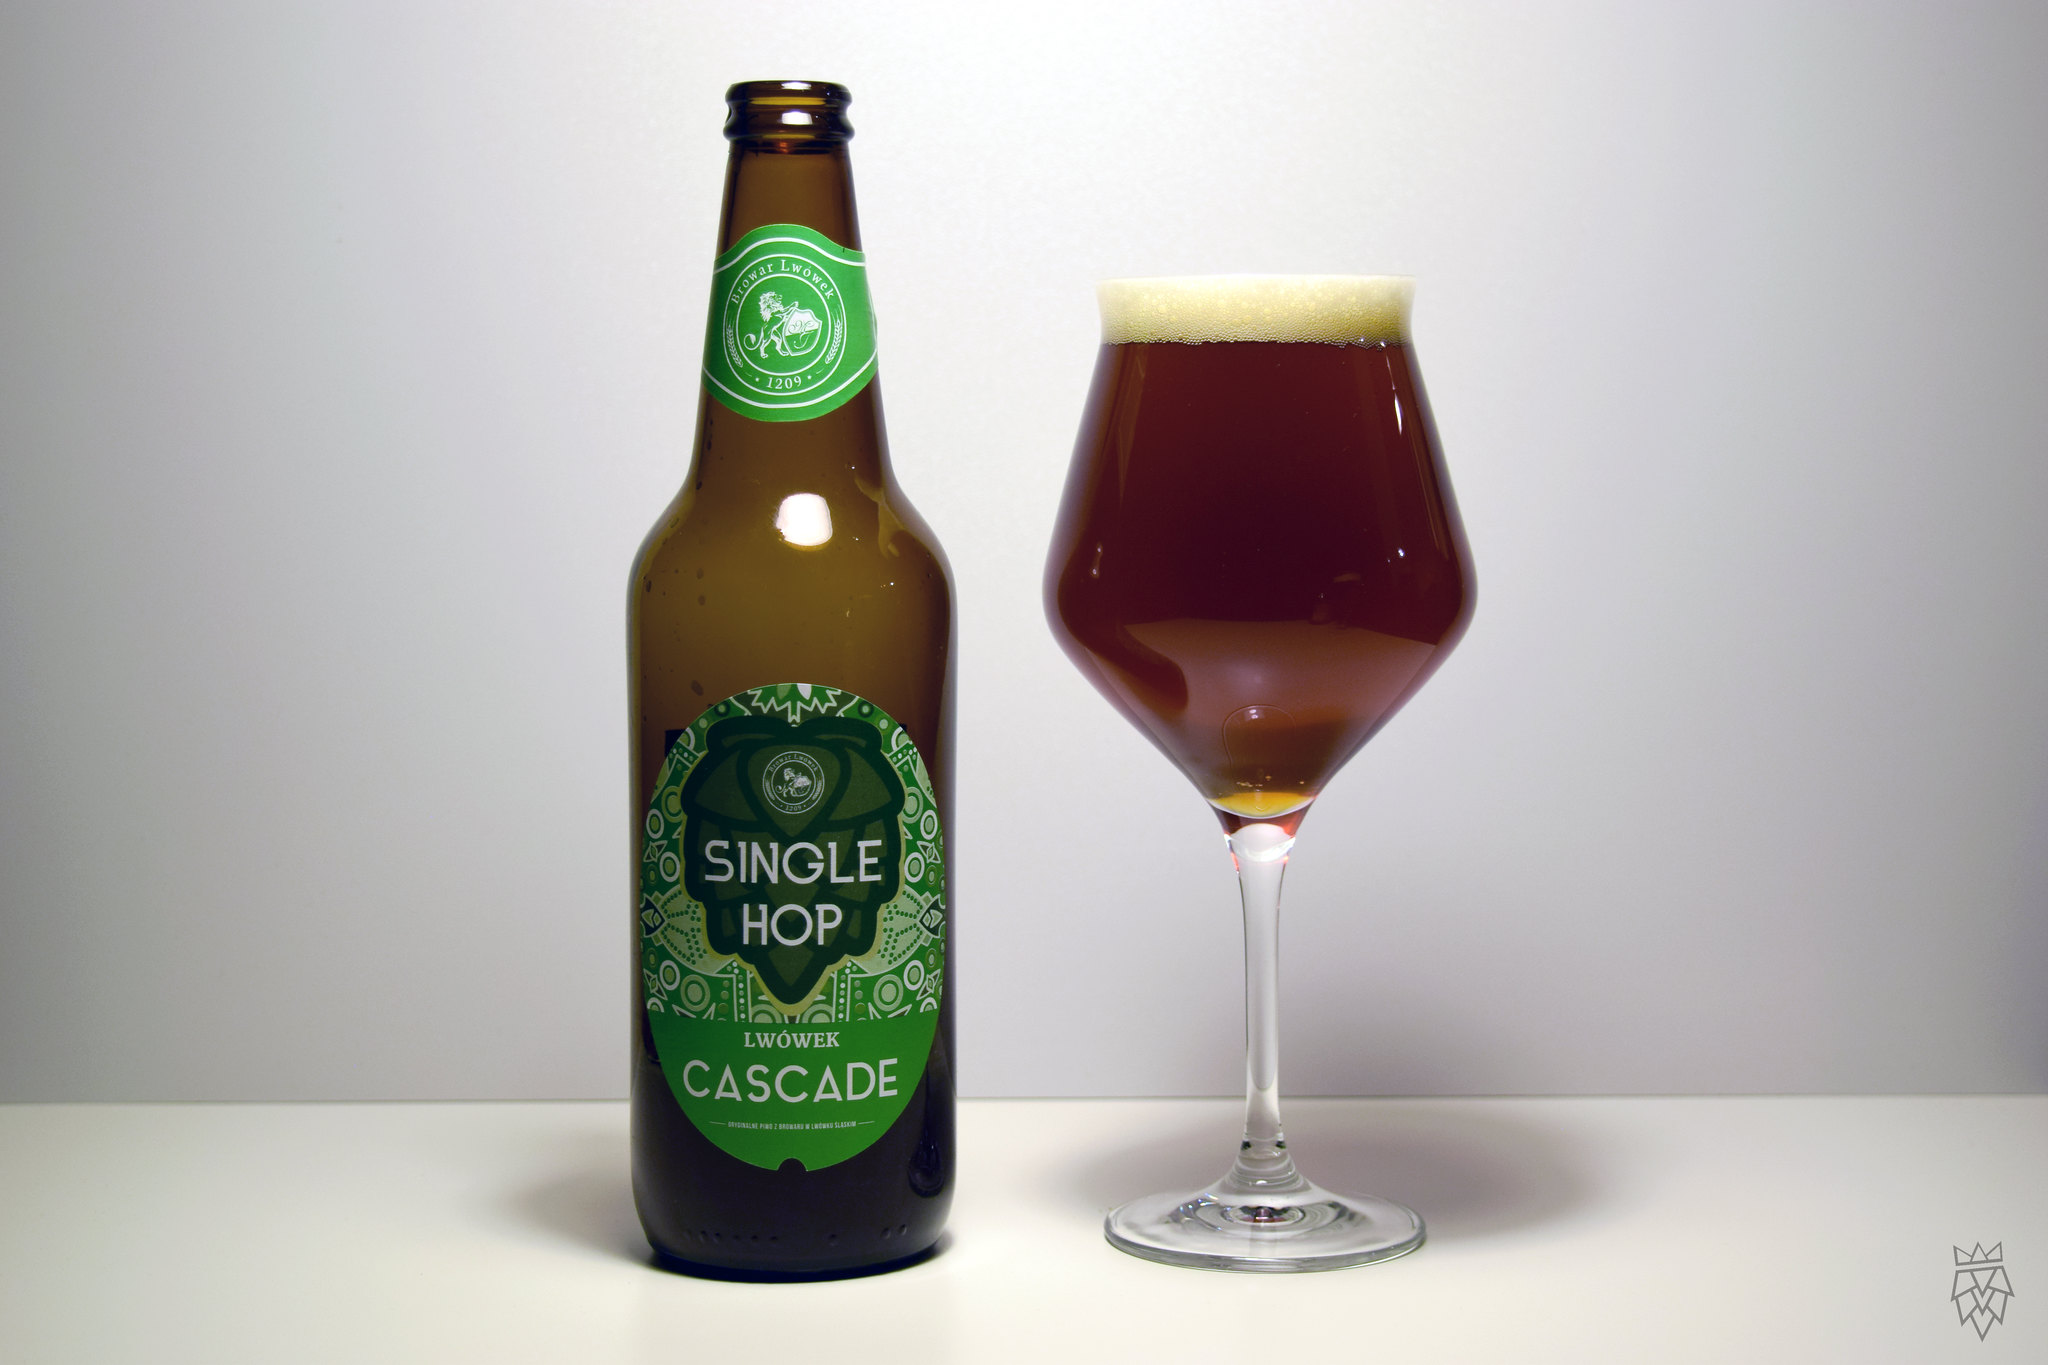 lwówek single hop cascade